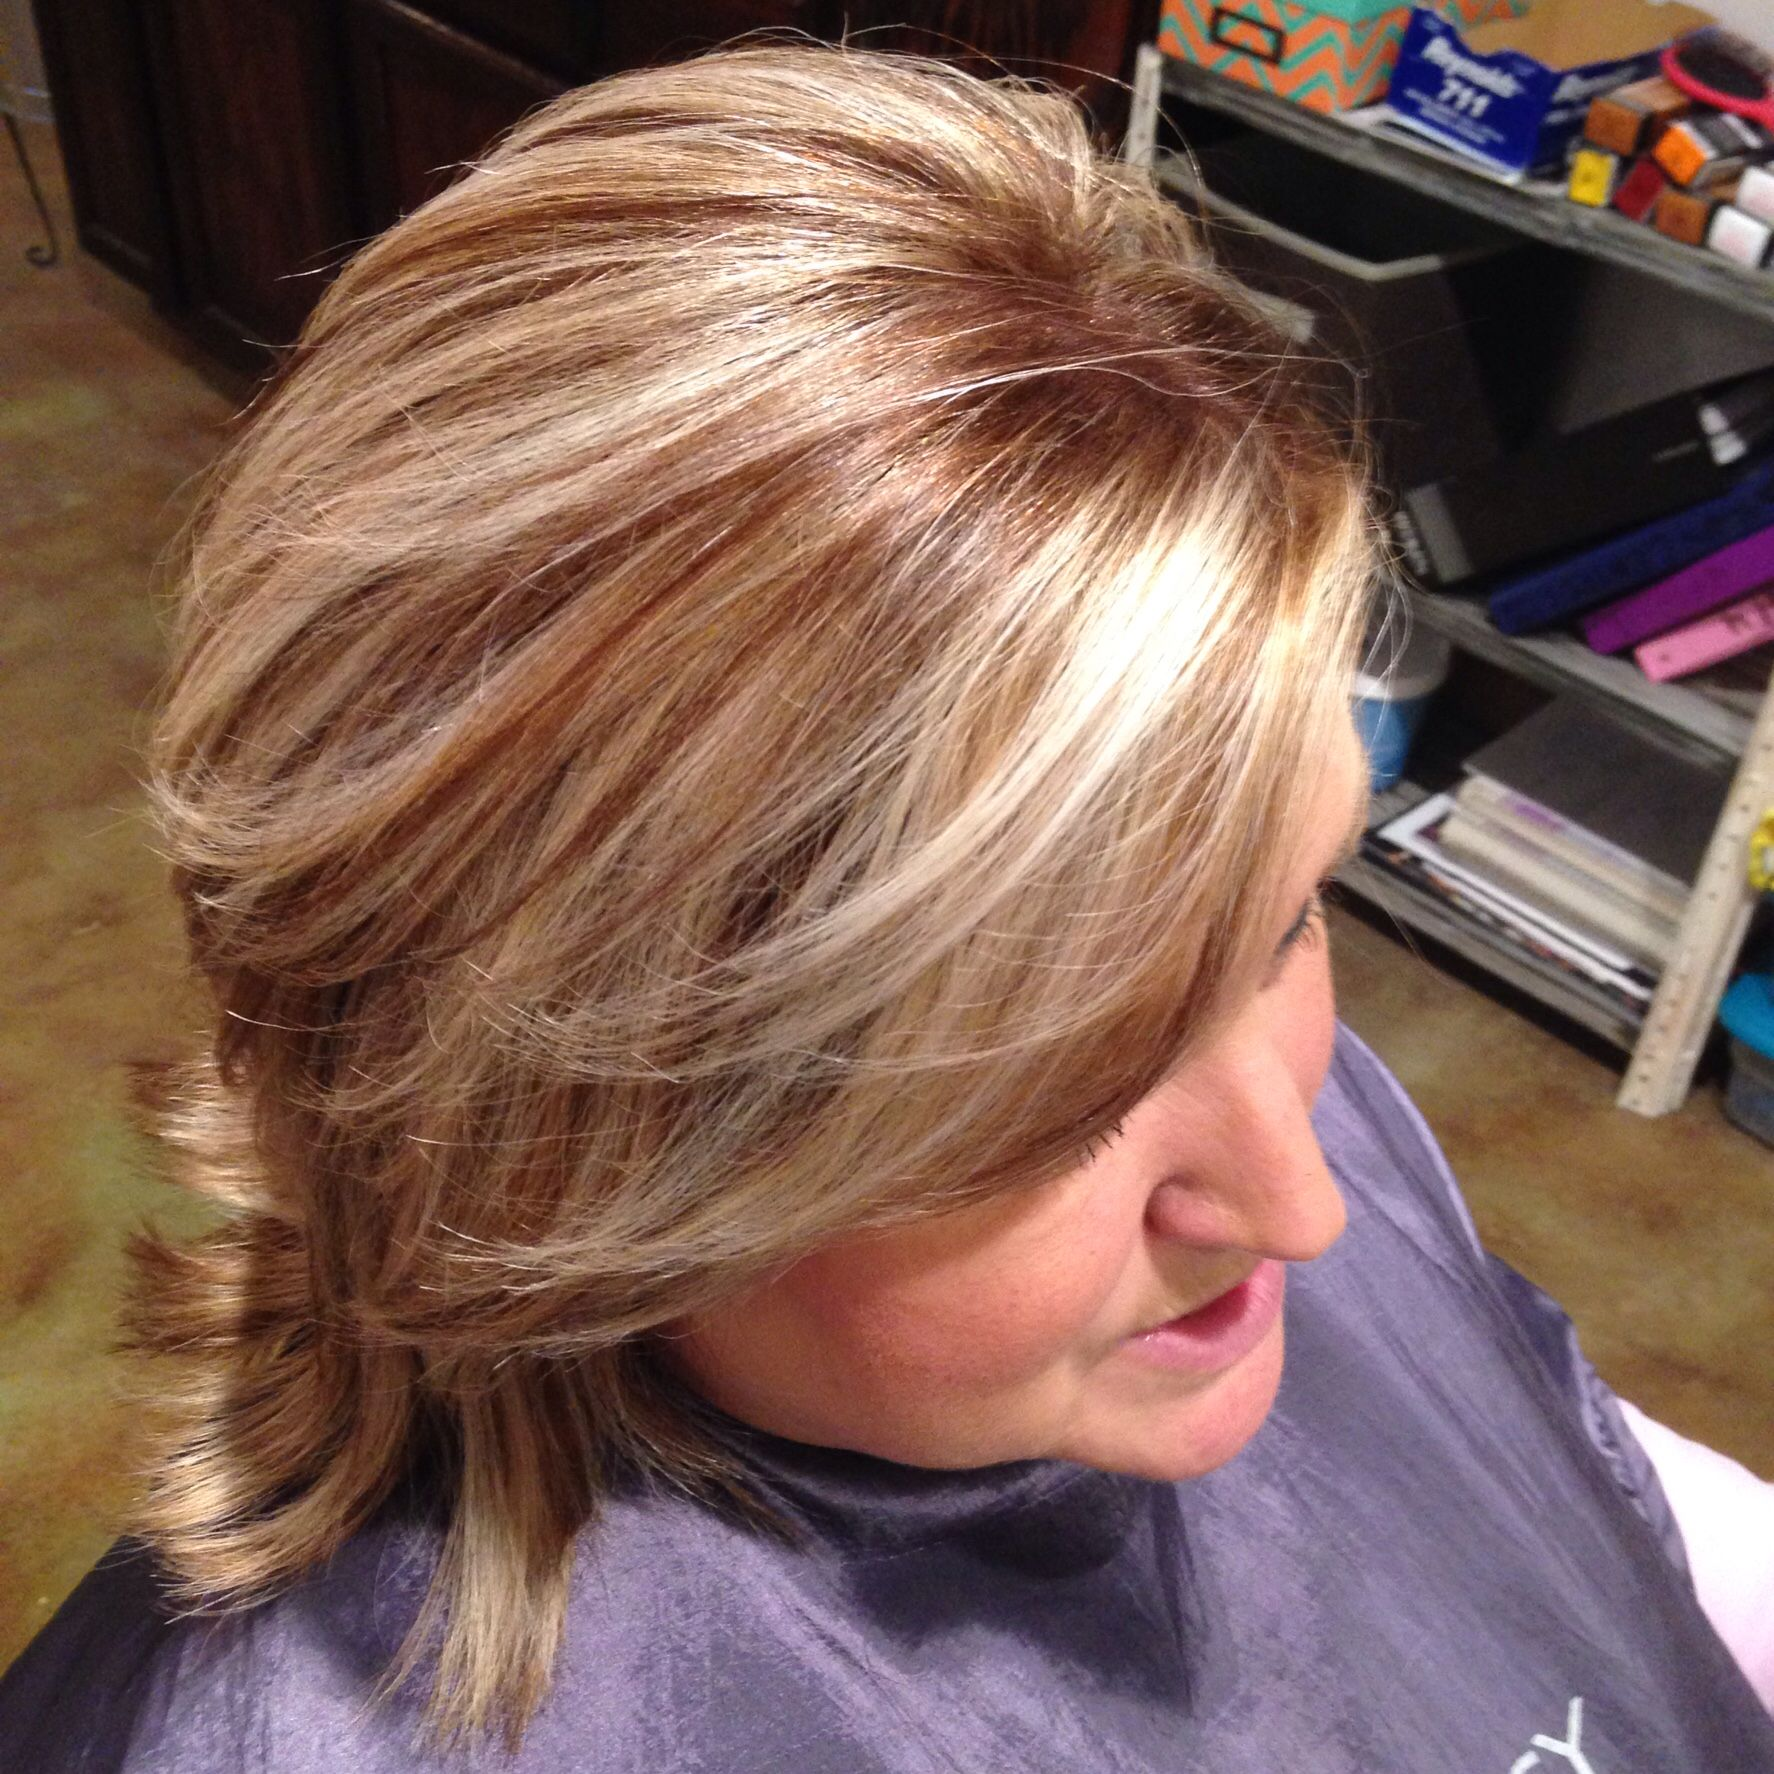 Grey Coverage With Highlights And Lowlight Grey Hair With Red Highlights Blonde Hair Colour Shades Hair Color Auburn